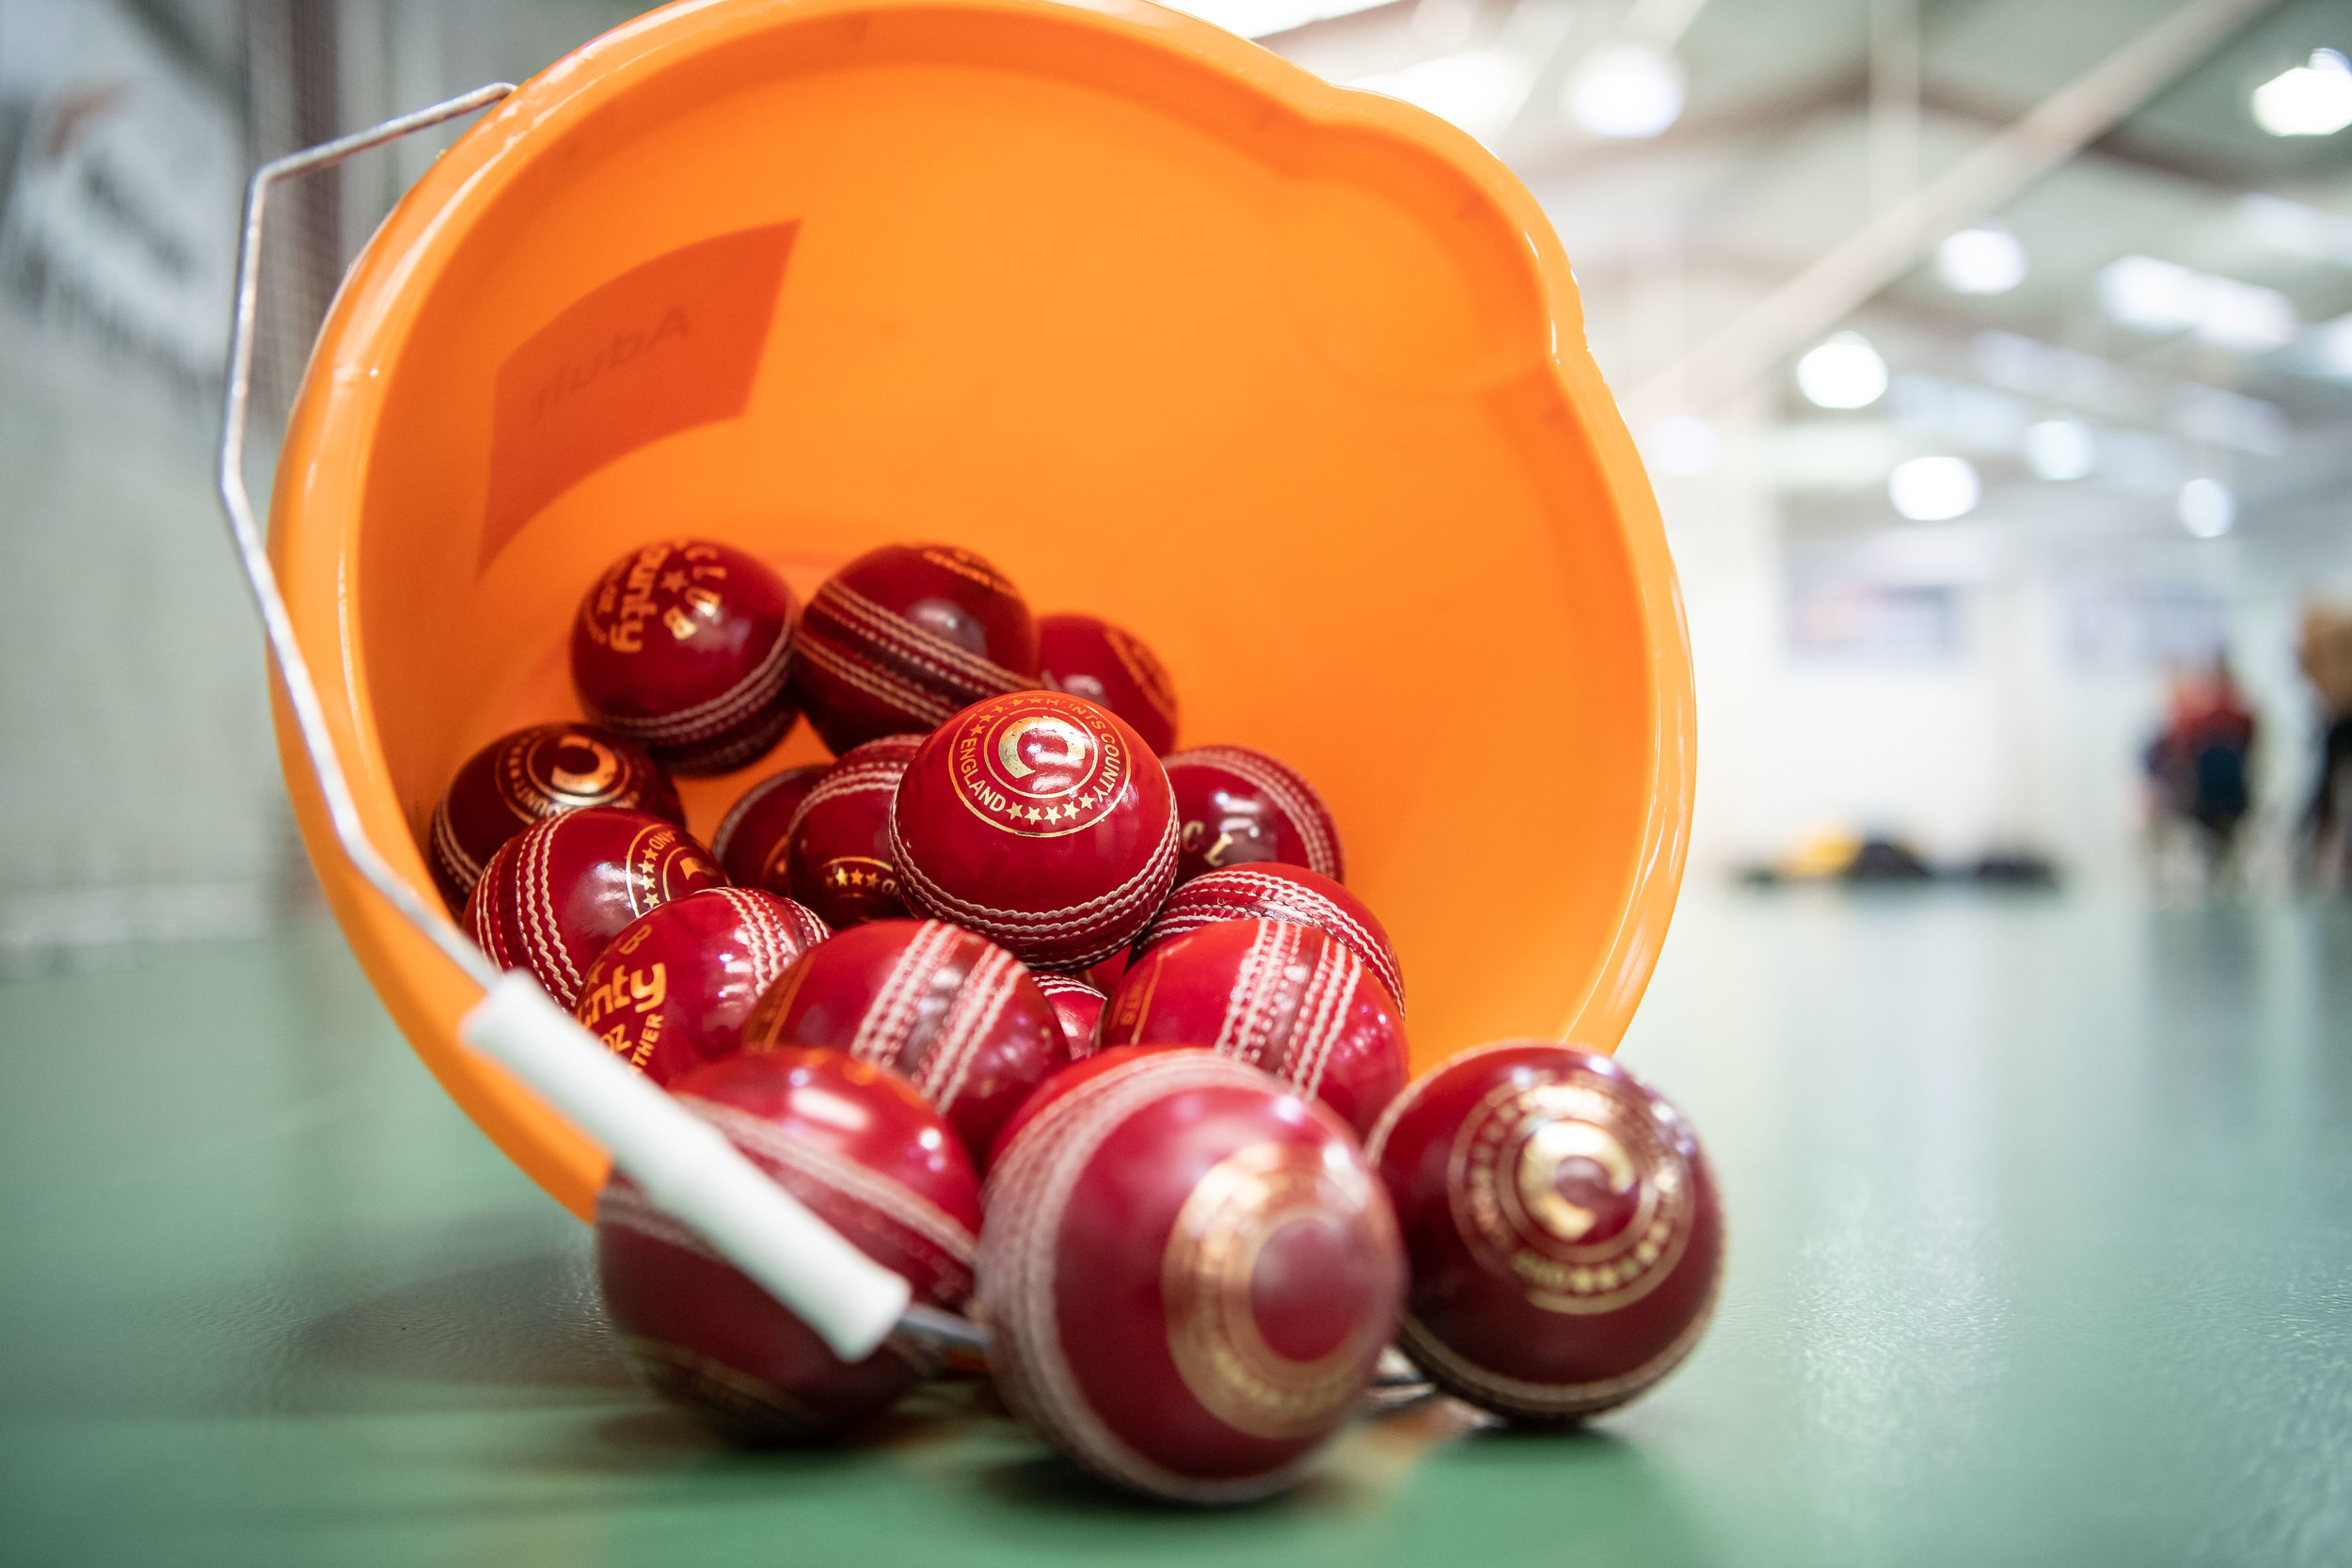 PSI_National_Fast_Bowling_Academy_21OCT18_SW_018.JPG